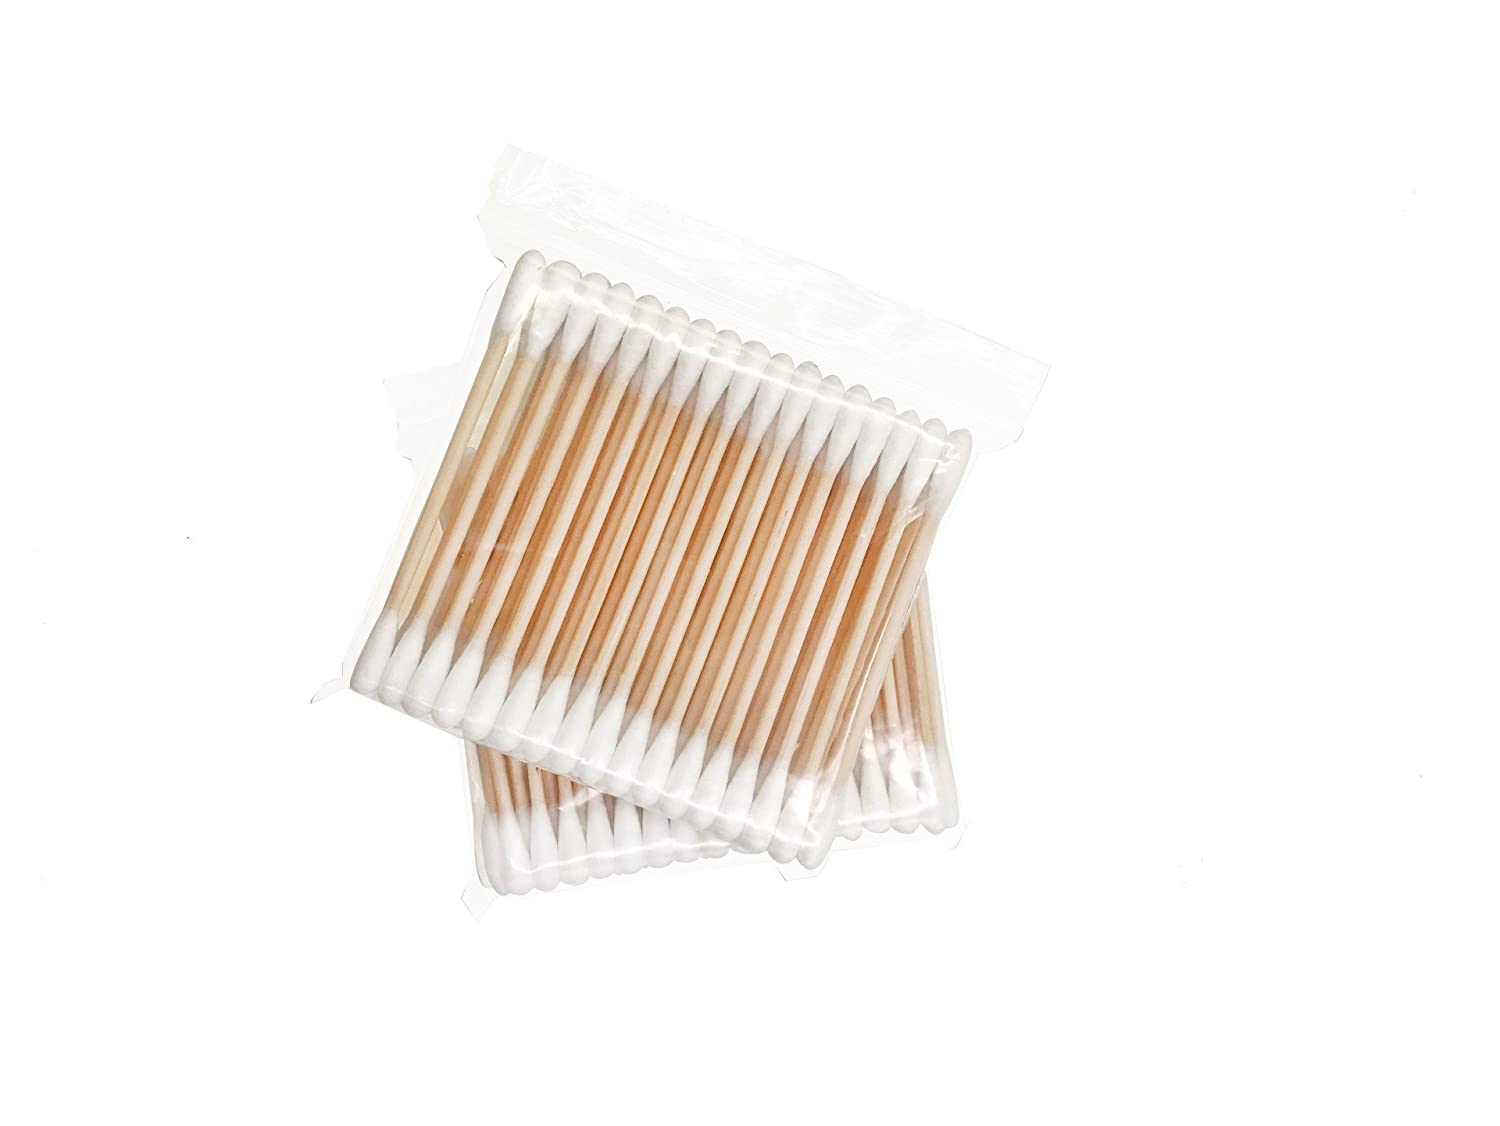 Cotton Swabs with Wooden Handle,600 ct Double Tipped With Finest Quality Cotton Heads- Multipurpose, Safe, Highly Absorbent & Hygienic zhejiang kangmin Co. Ltd.